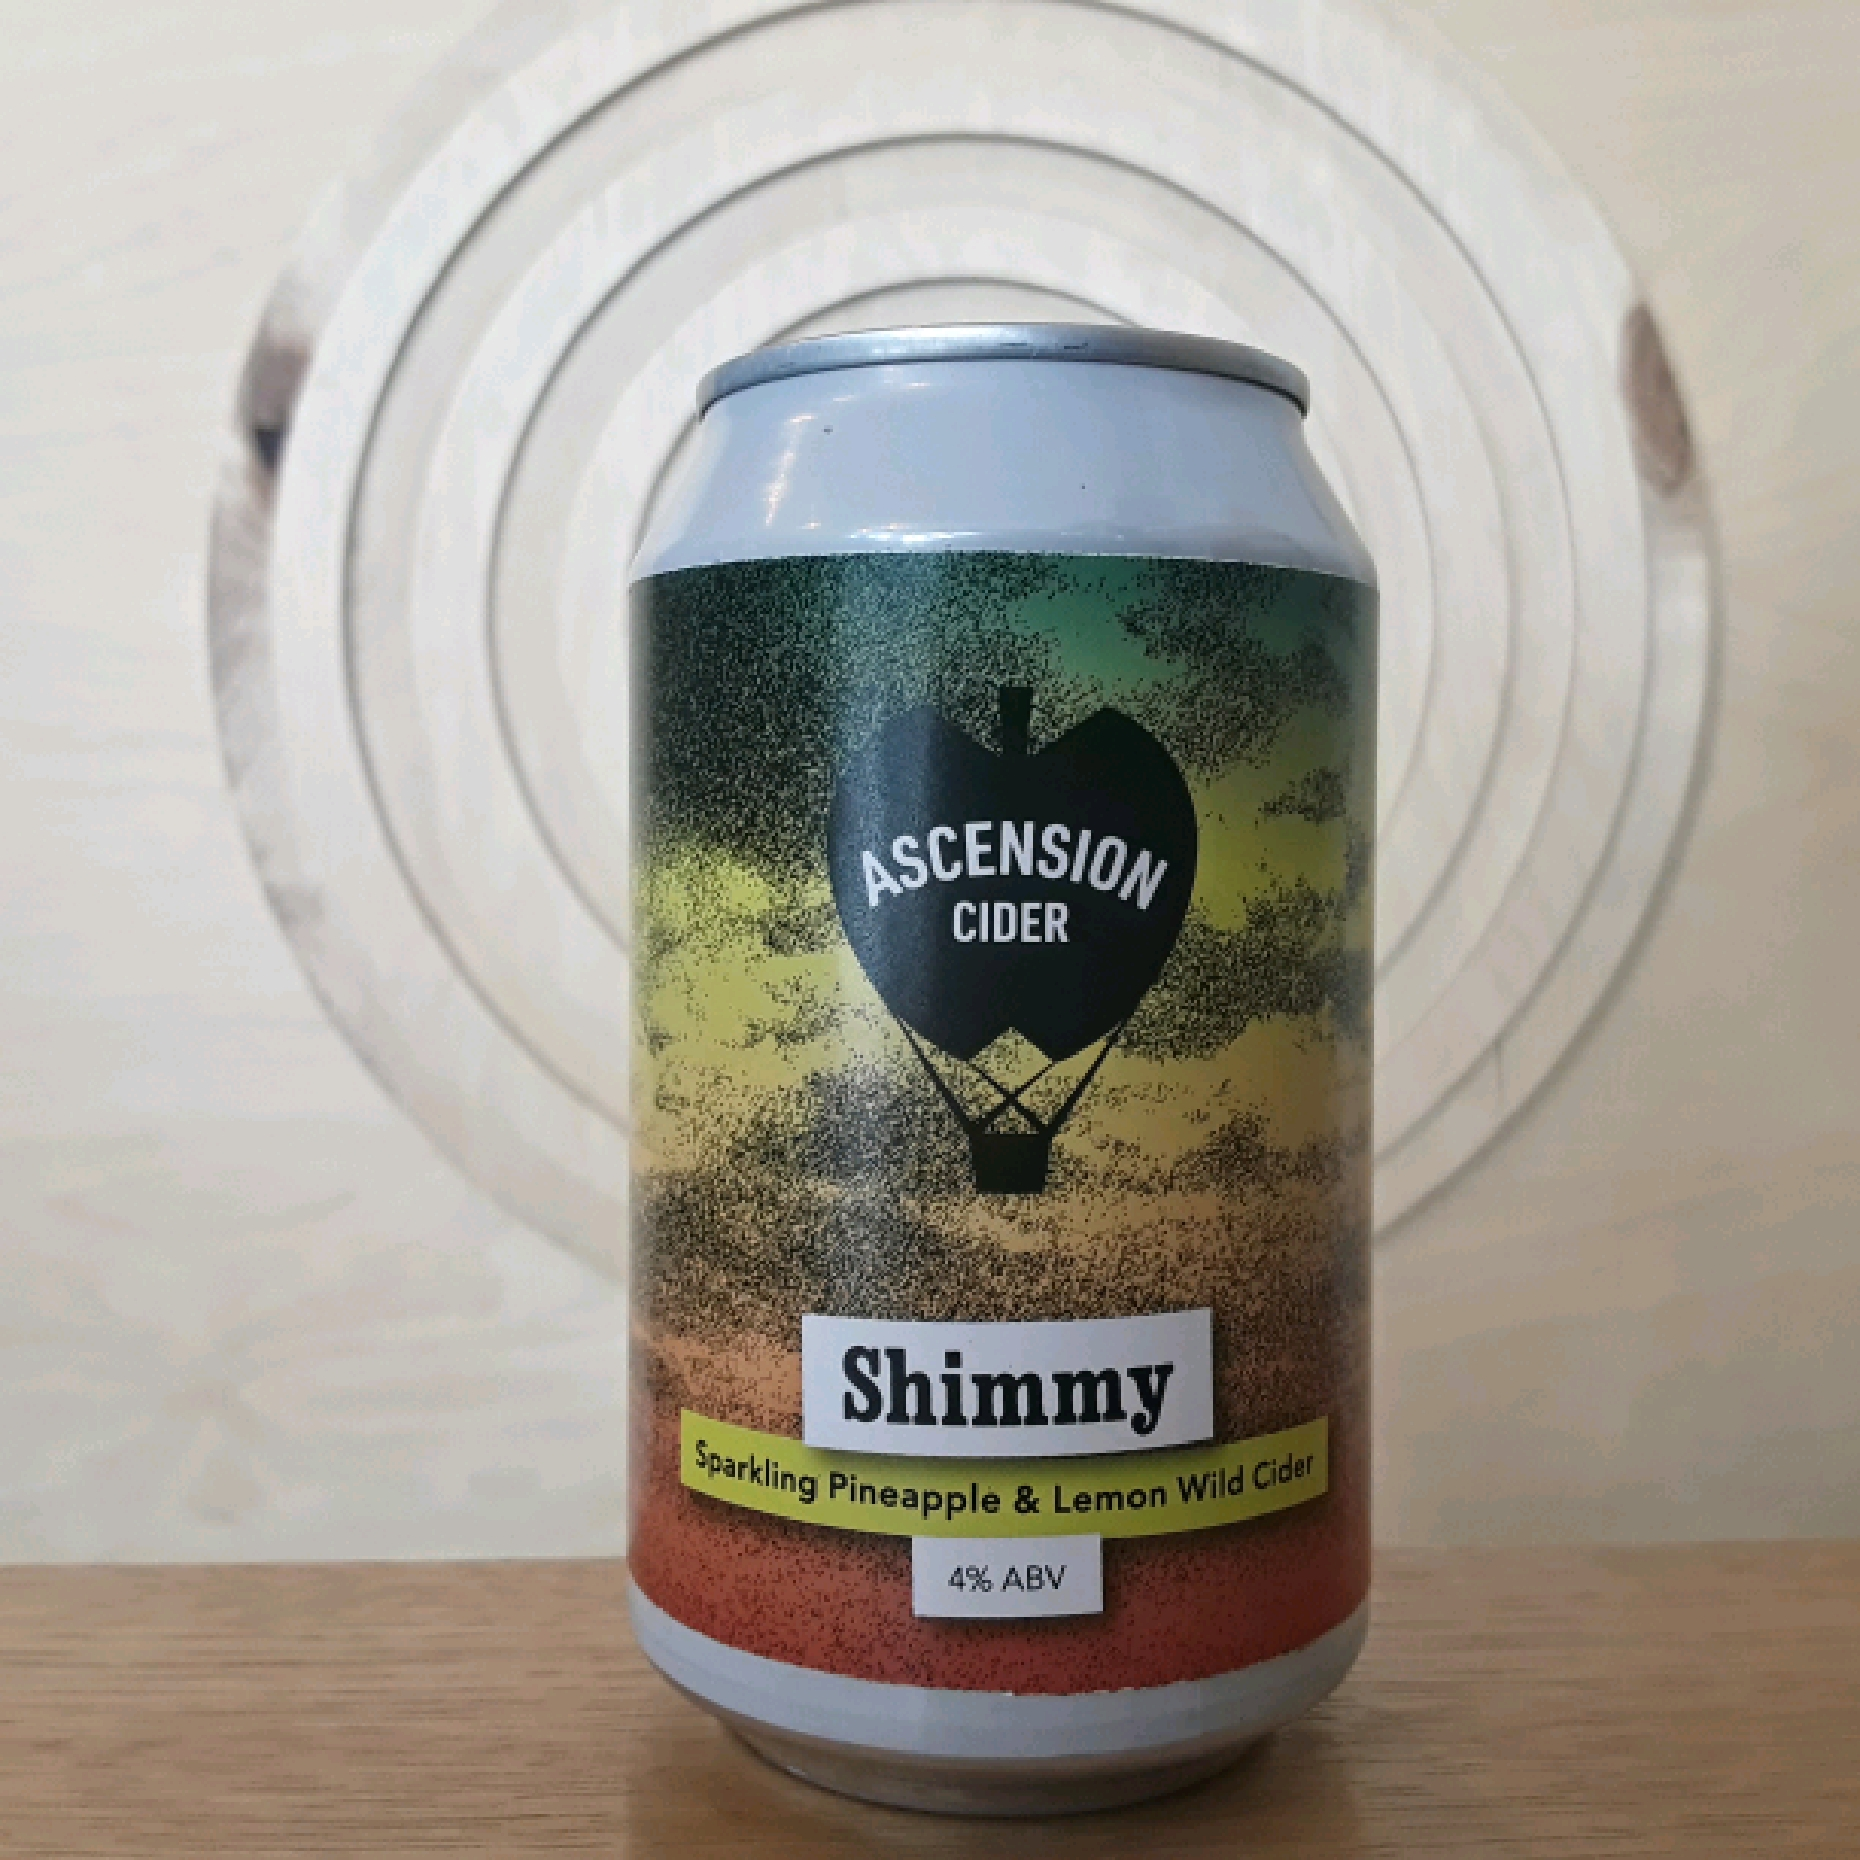 Ascension Shimmy Cider